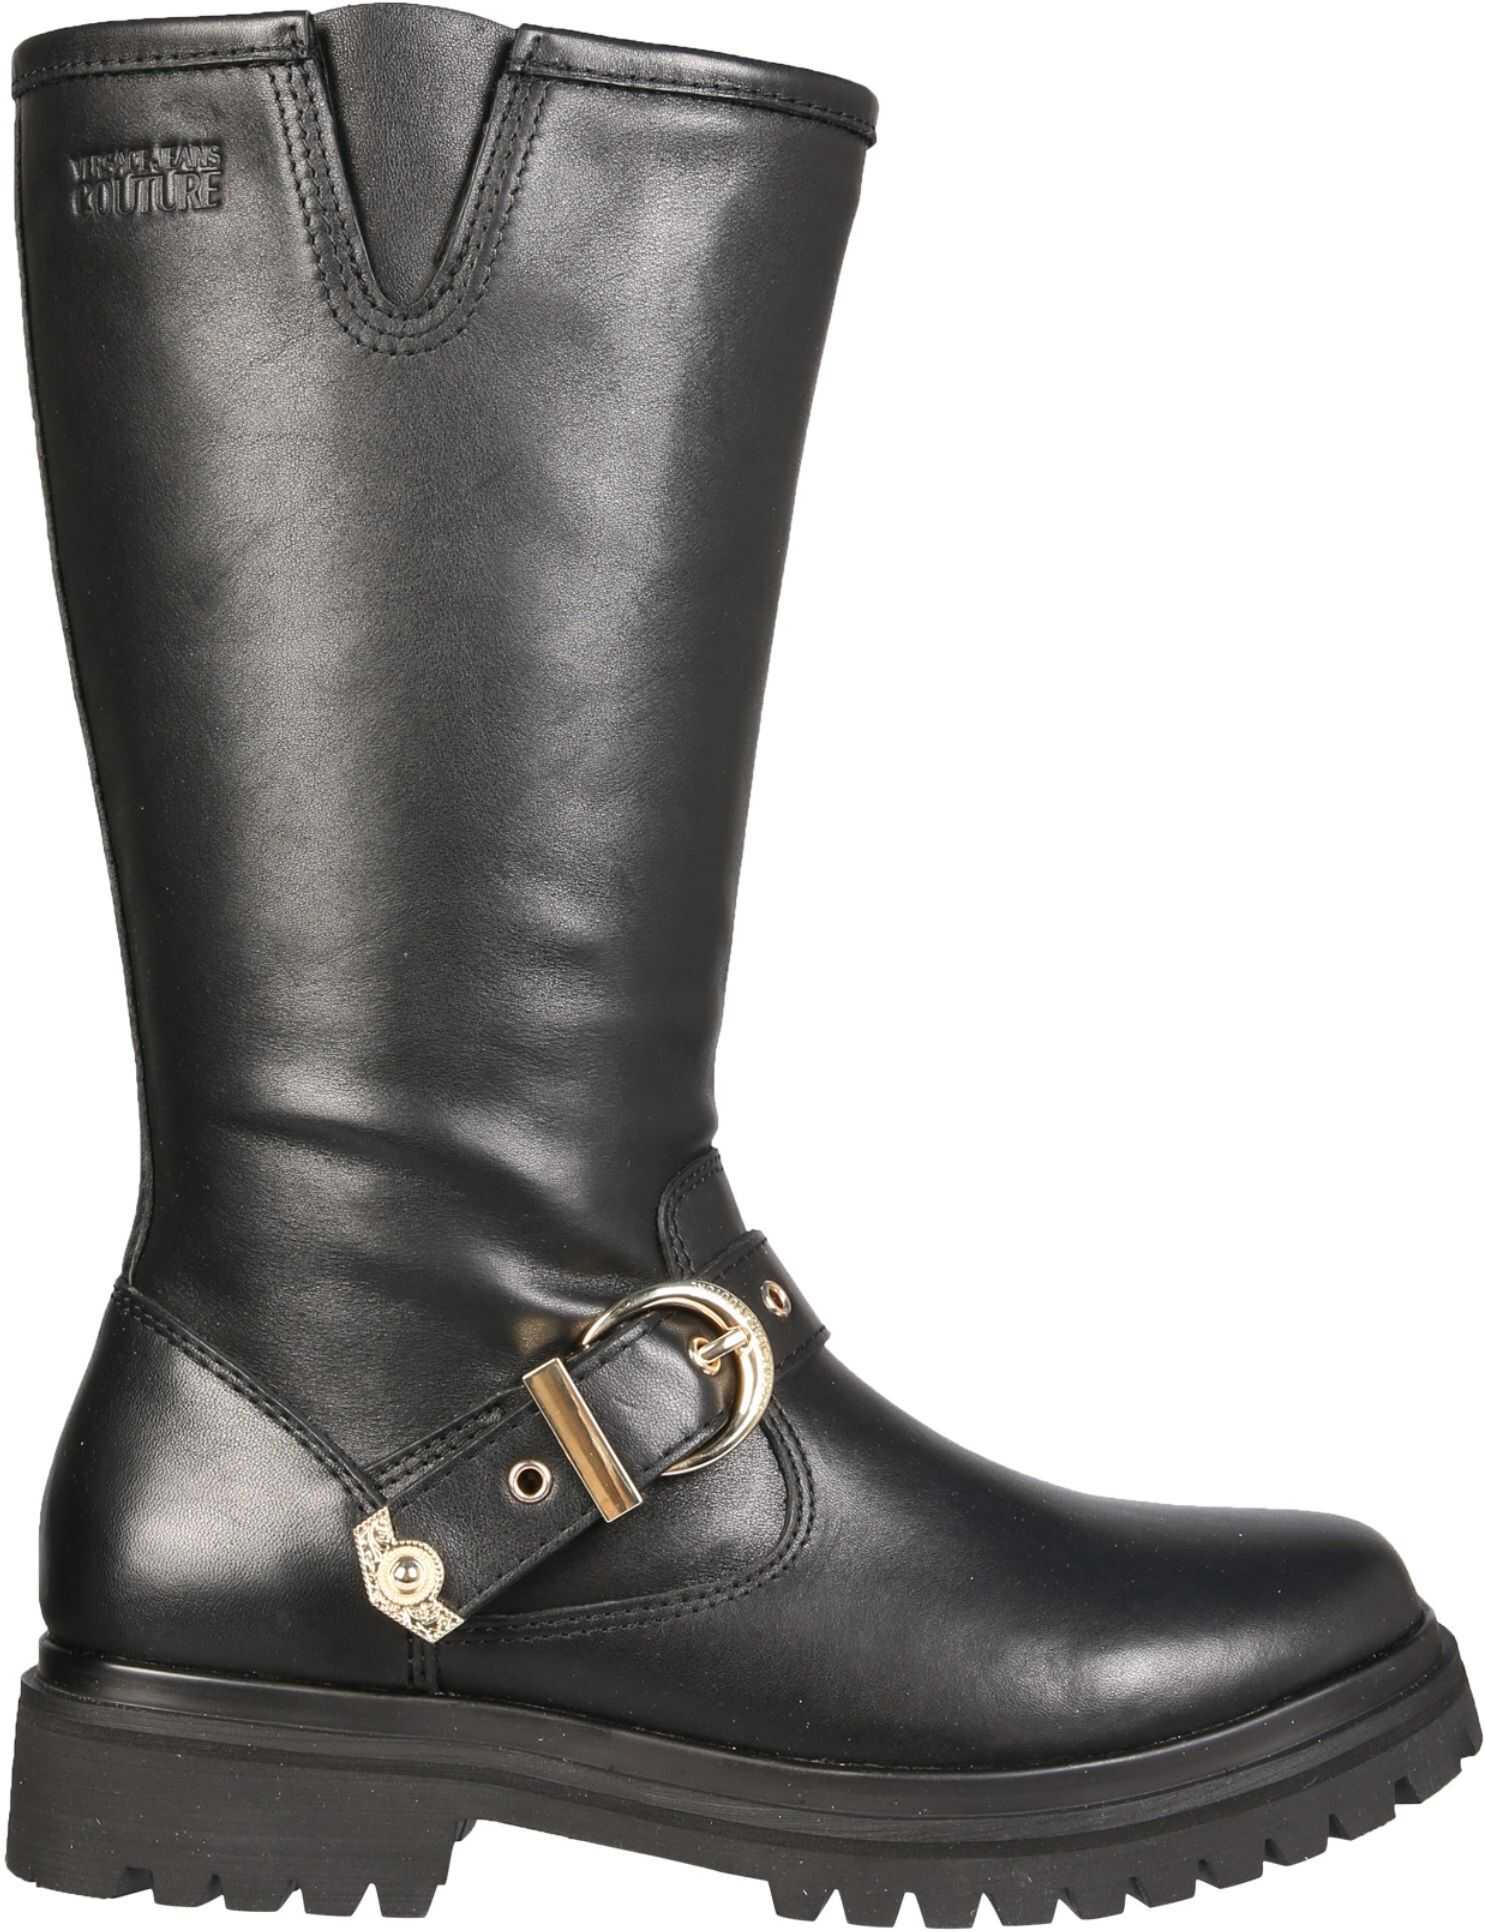 Versace Jeans Couture Boots With Heritage Tank Details E0VZAS40_71563899 BLACK imagine b-mall.ro